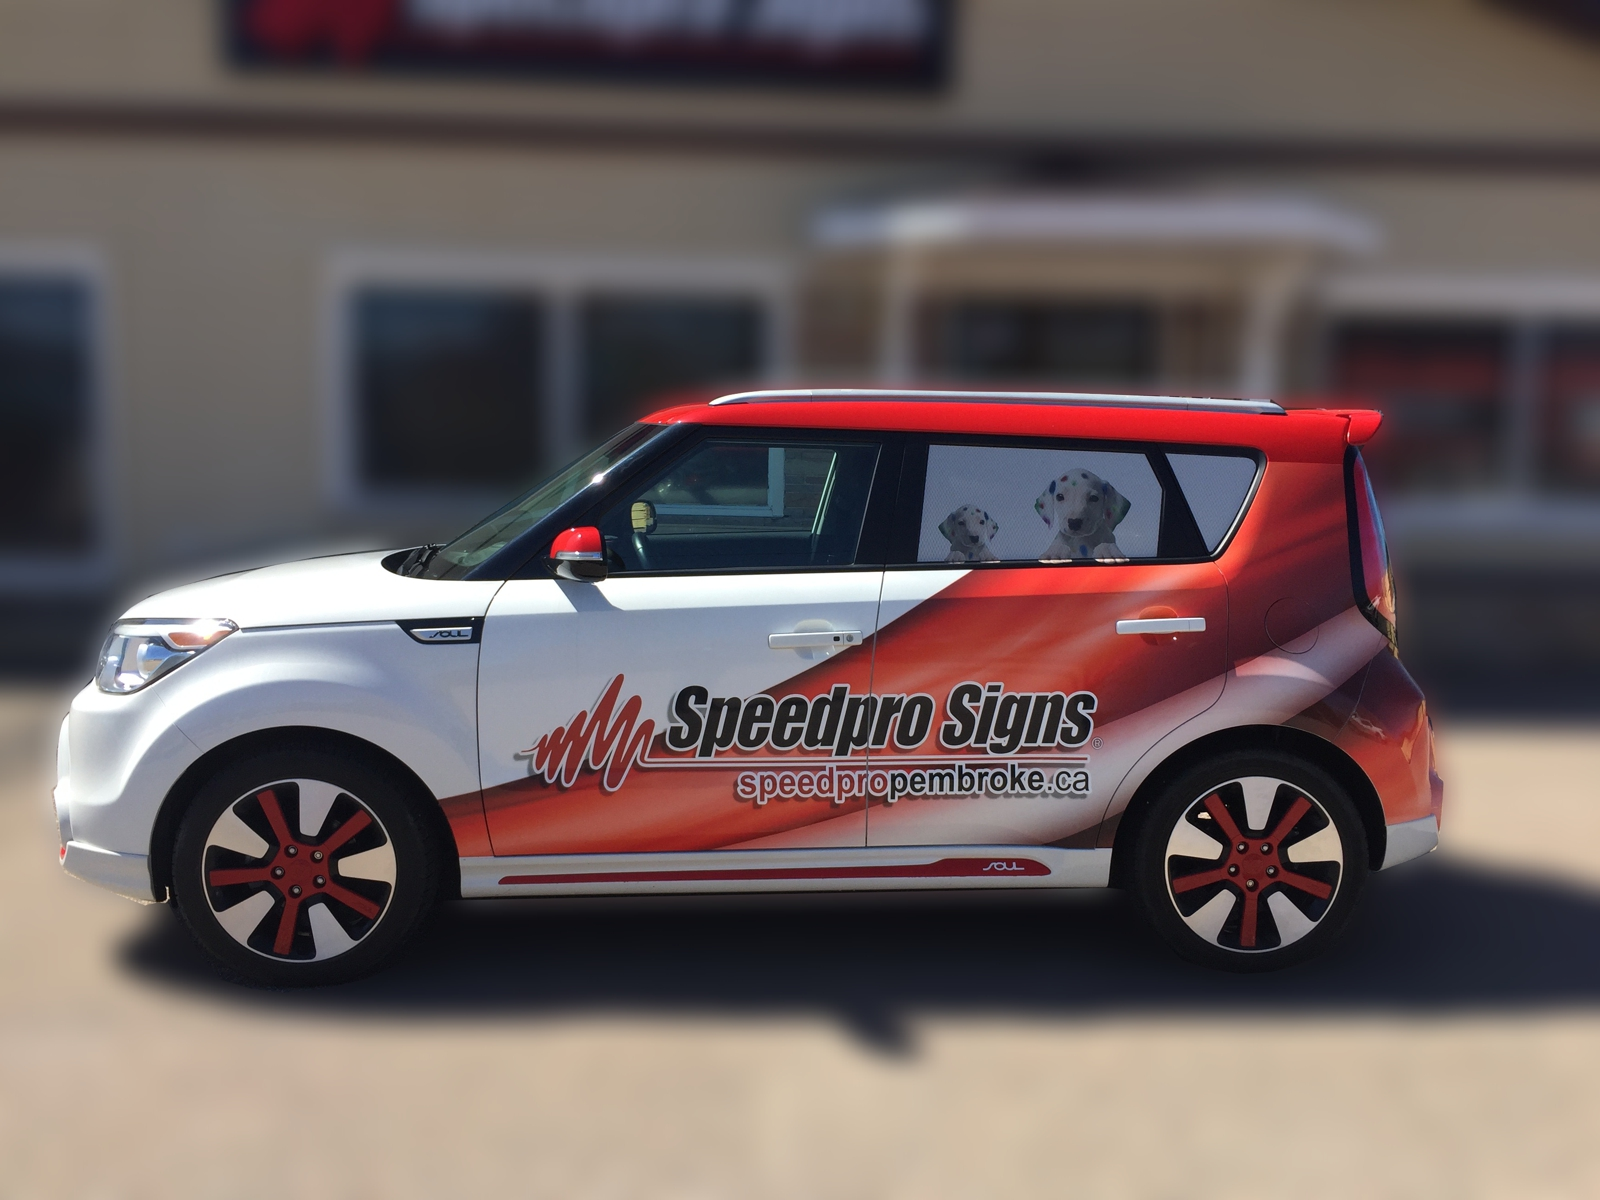 Vinyl Car And Vehicle Wraps Pembroke Speedpro Signs